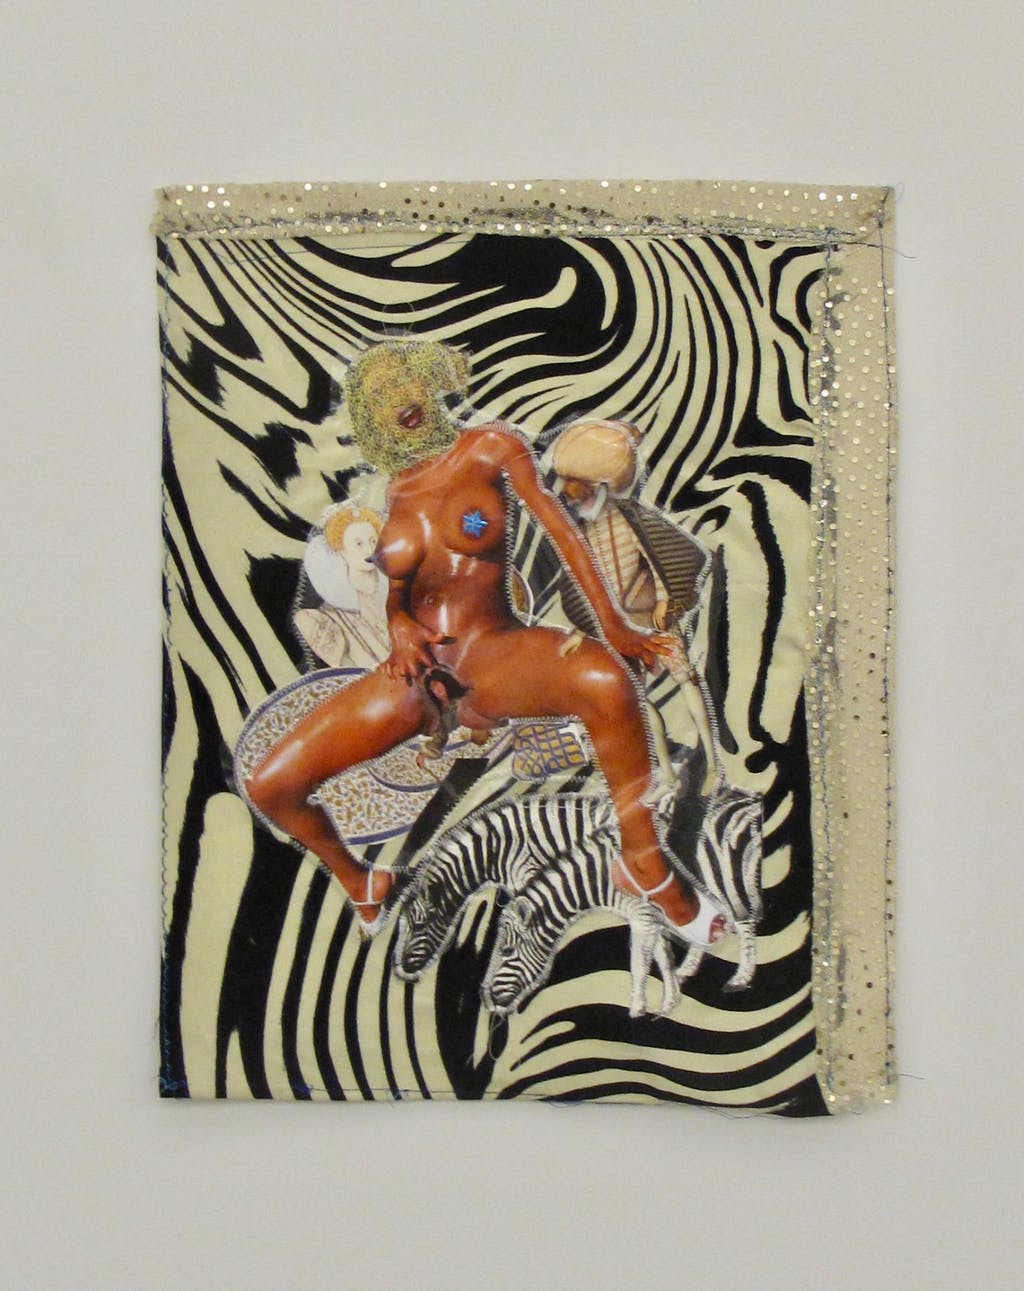 Patricia Kaersenhout Your History Makes Me So Horny, 2011 mixed media on textile, 50 cm x 40 cm, framed in perspex box (5) - © Paris Internationale